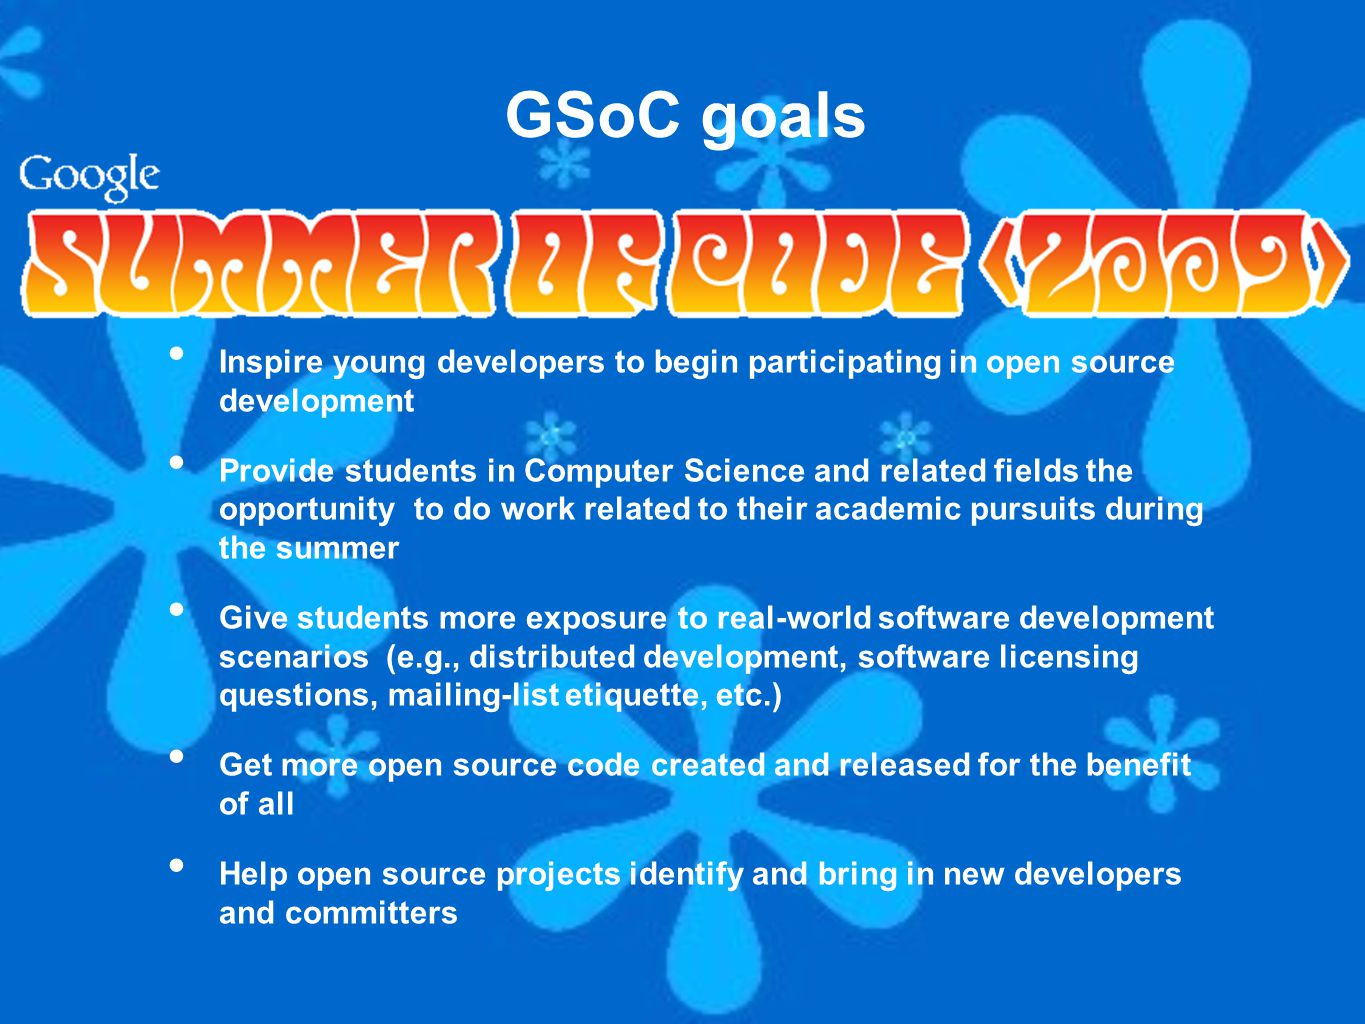 For more information visit http://code.google.com/soc/ and apply.